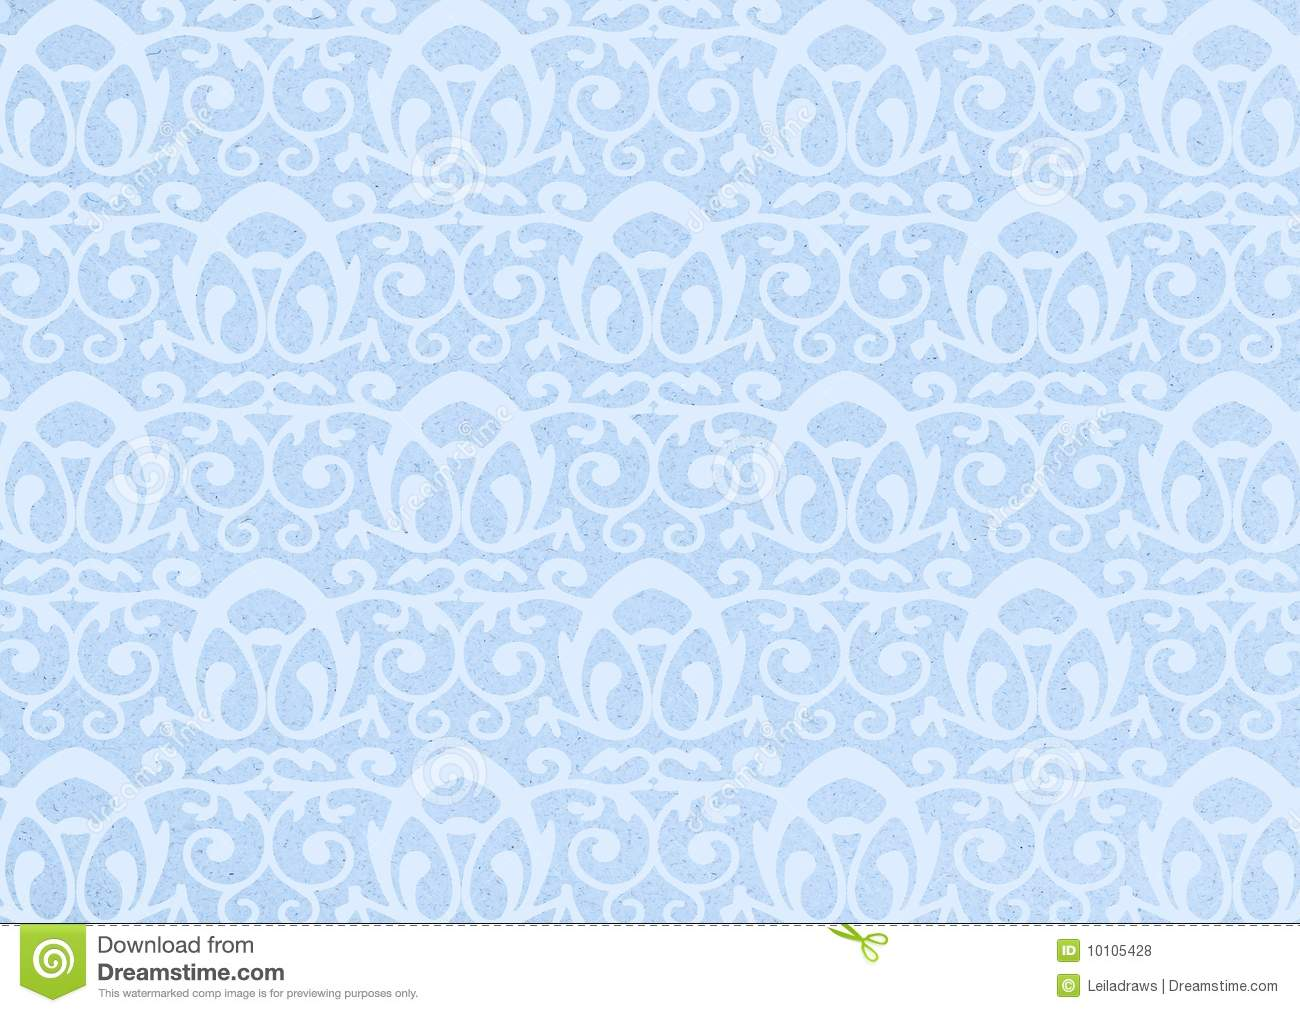 Fall Halloween Wallpaper Light Blue Texture Royalty Free Stock Photos Image 10105428